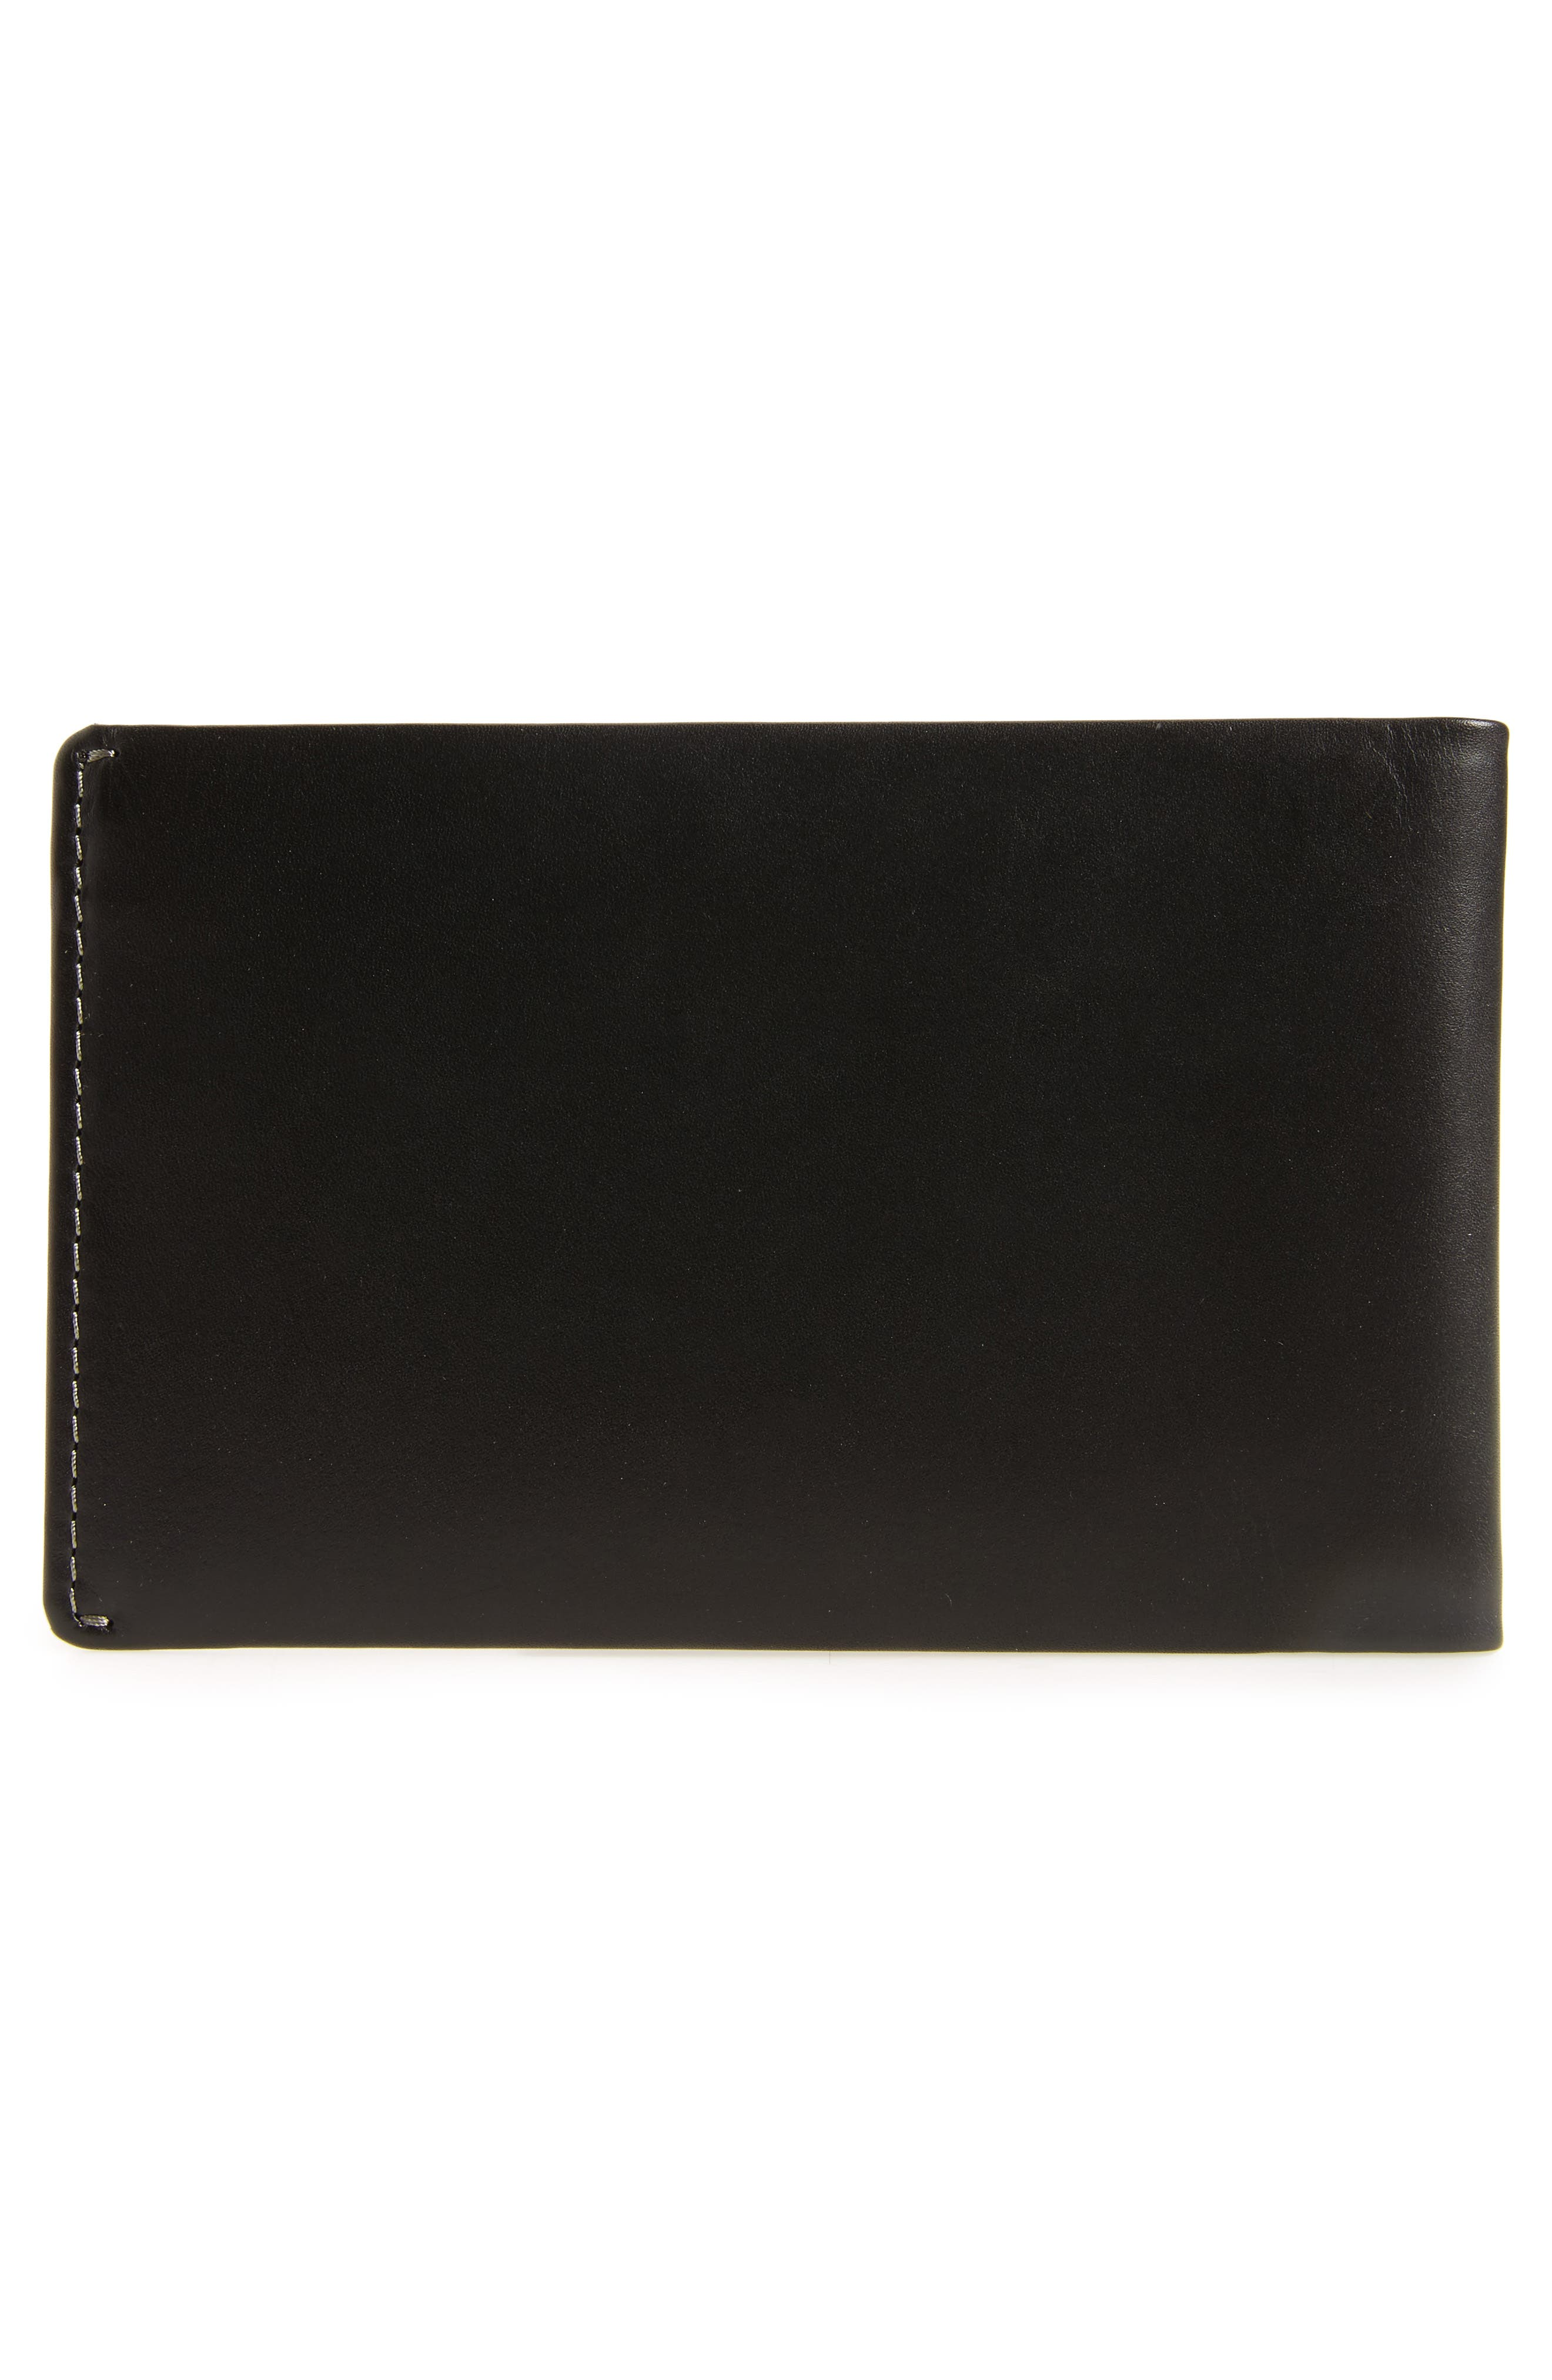 RFID Travel Wallet,                             Alternate thumbnail 3, color,                             001